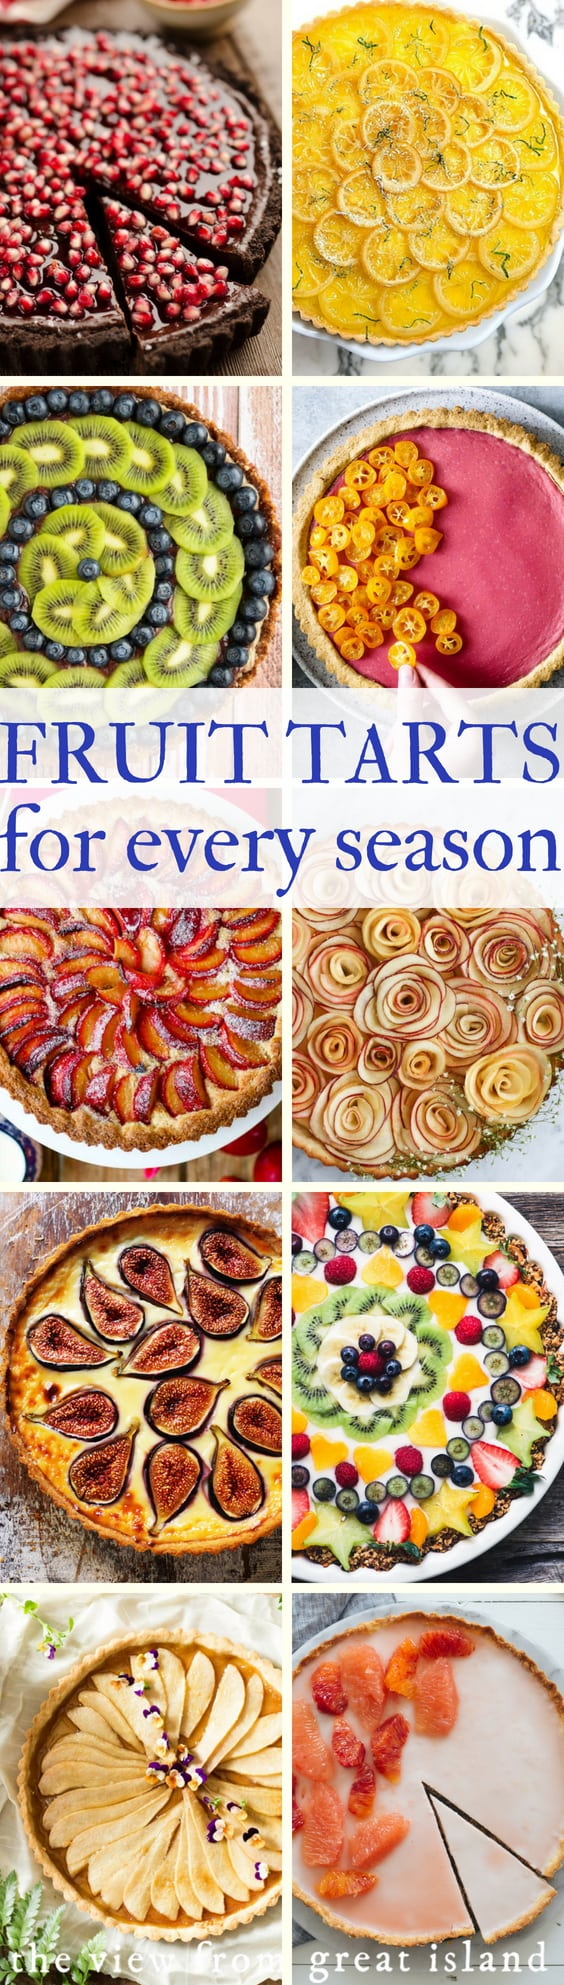 A Year of Fruit Tarts ~ 12 gorgeous recipes ~ there's a fresh fruit dessert for every month of the year. #tart #fruittart #nobake #glutenfree #dessert #apple #rhubarb #kiwi #fruit #vegan #healthy #nobake #plum #applerose #fig #pear #citrus #recipe #easy #winter #crust #rustic #custard #filling #fresh